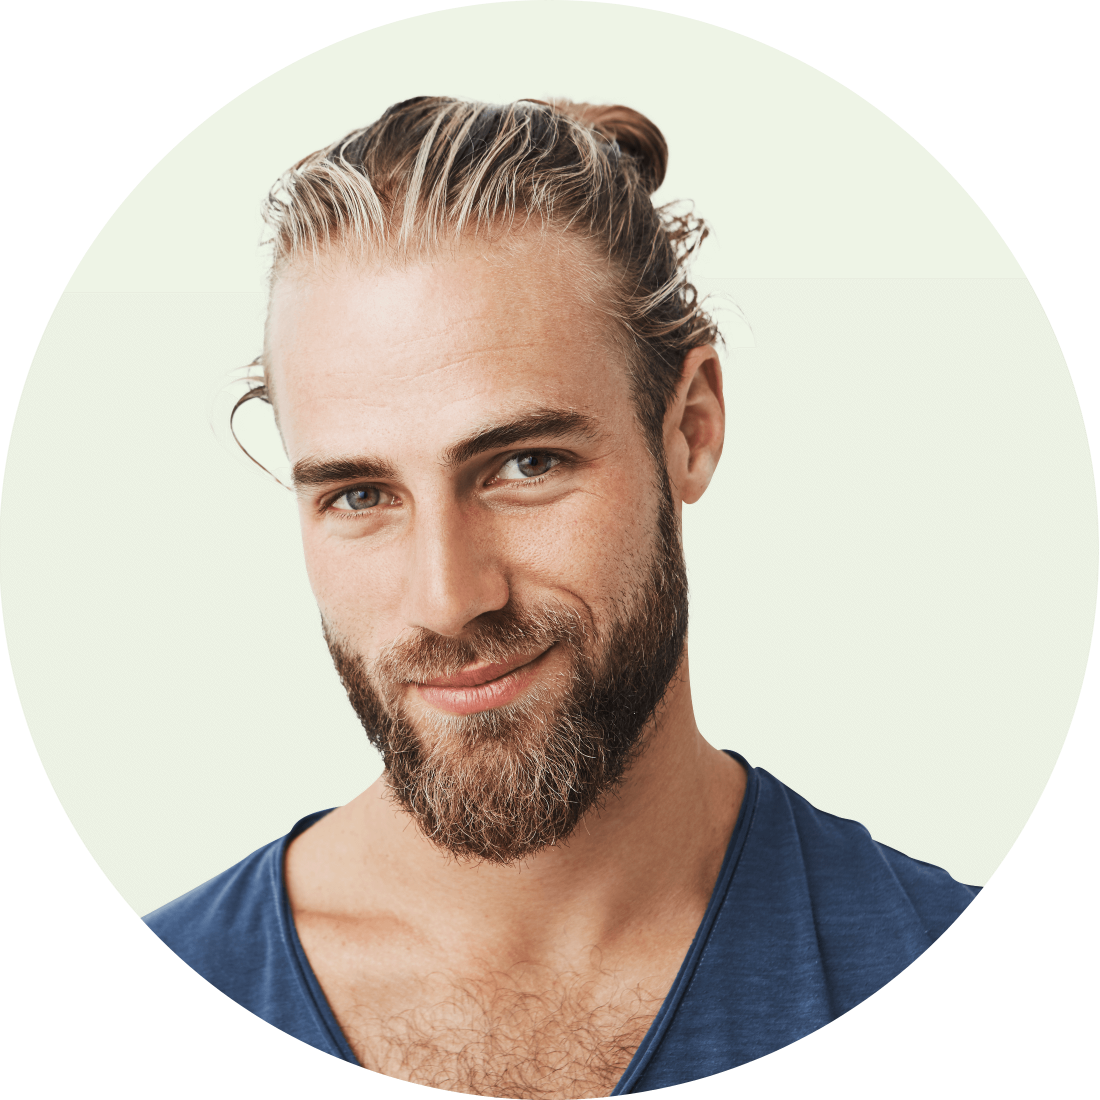 Why men choose Revision Rhinoplasty?